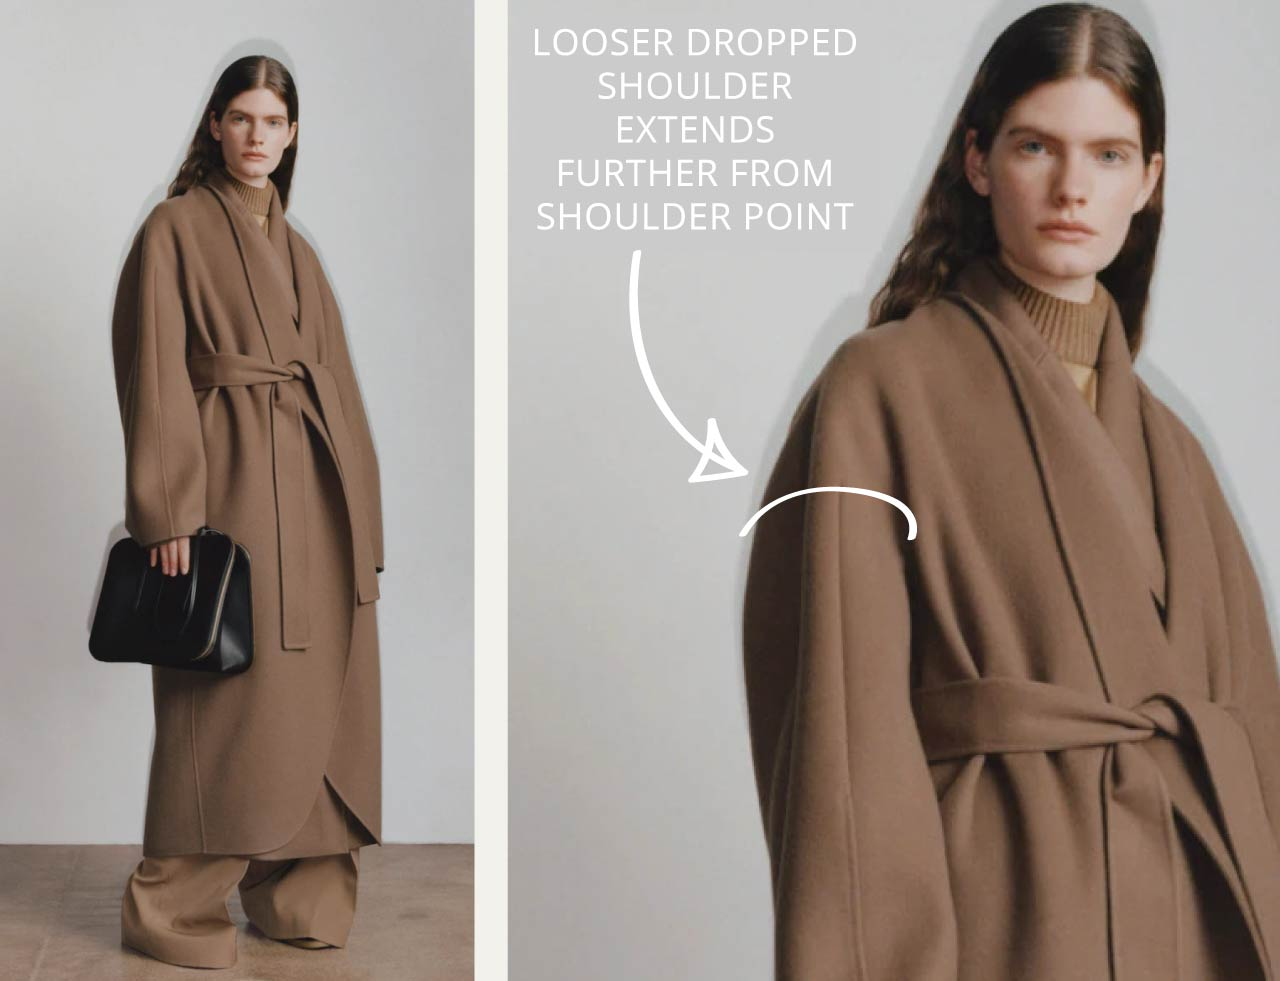 Slight Dropped Shoulders at The Row | The Cutting Class. Looser dropped shoulder styles extend further past the shoulder point.